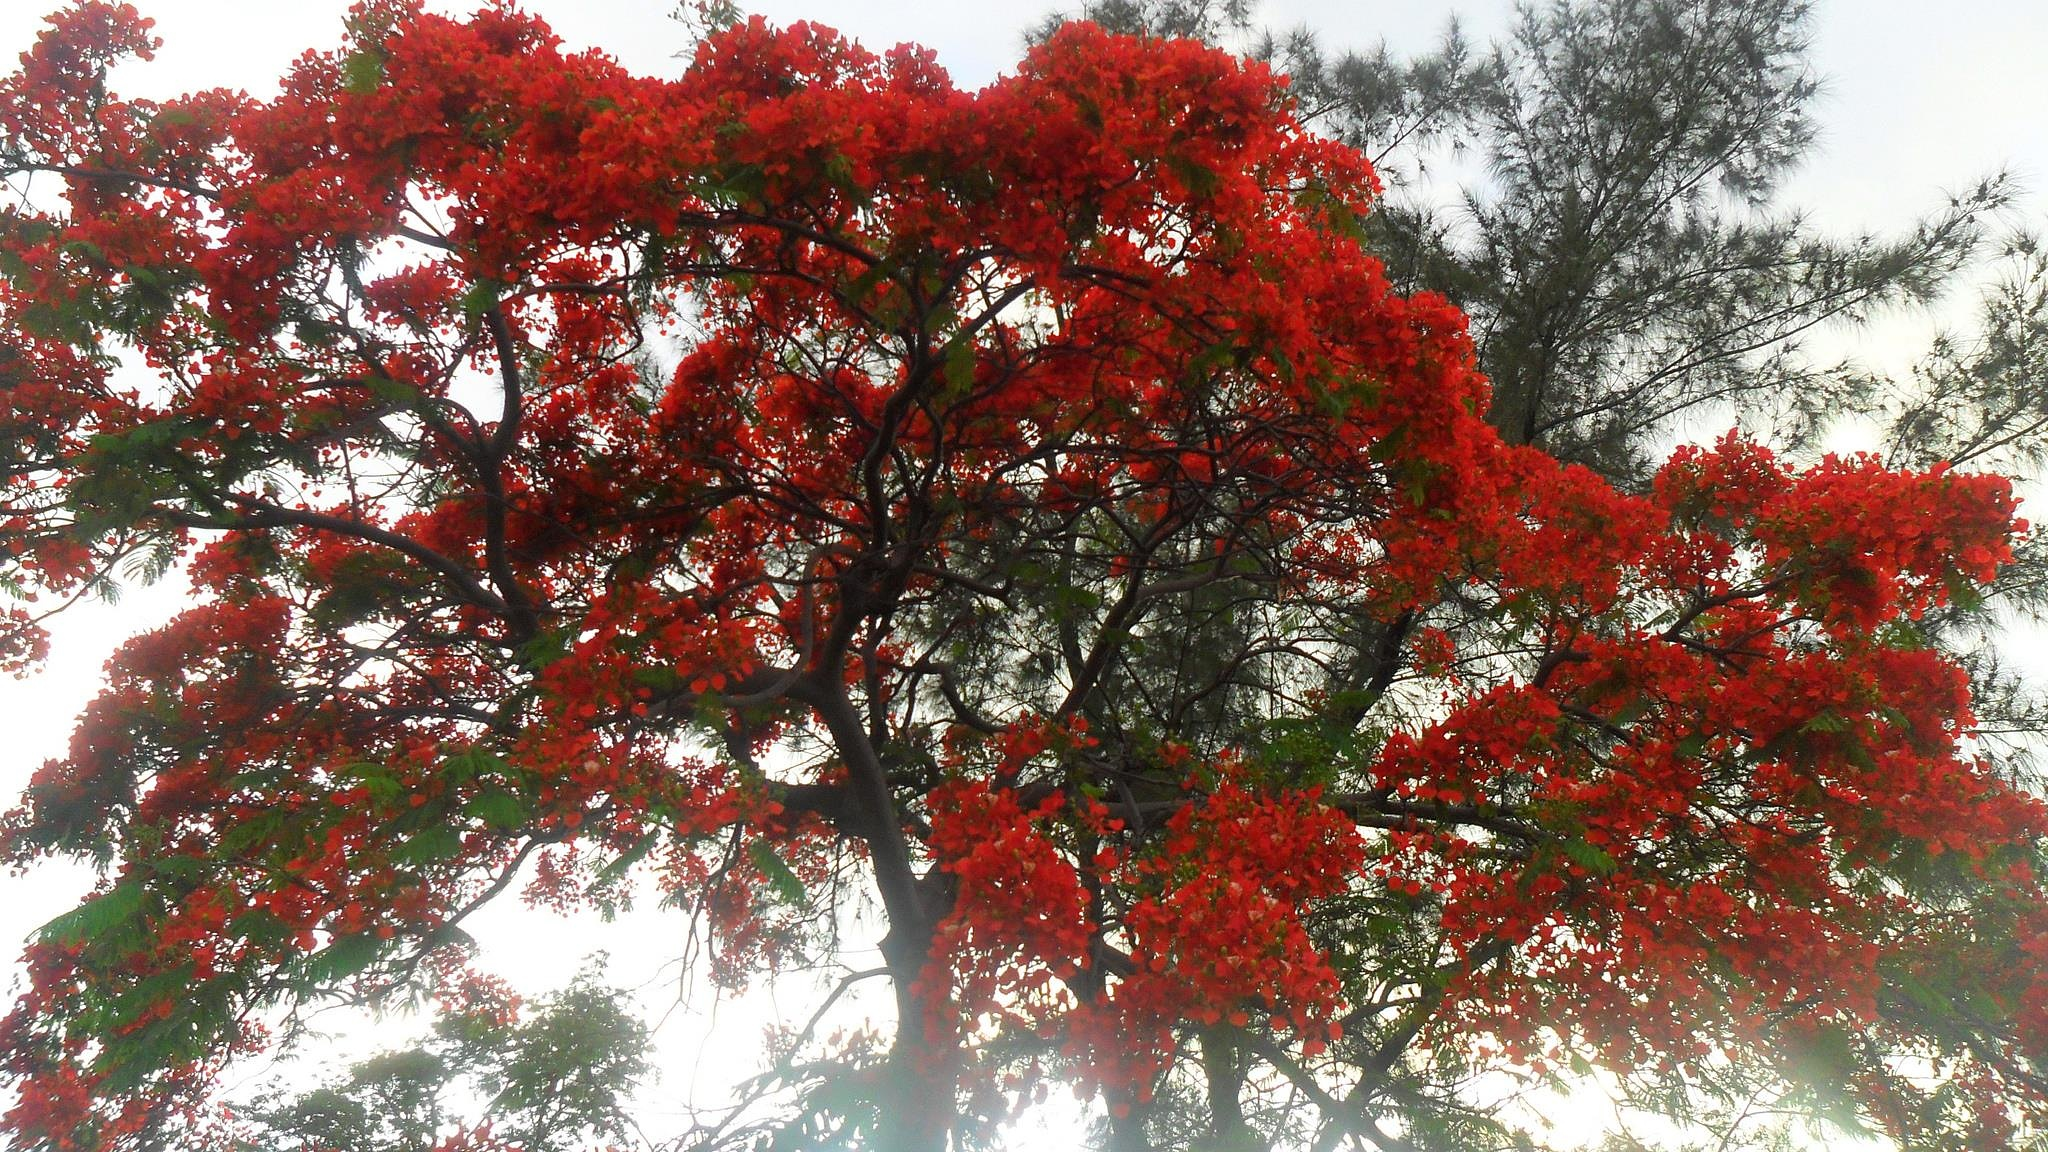 The flamboyan tree by lauretthierry974